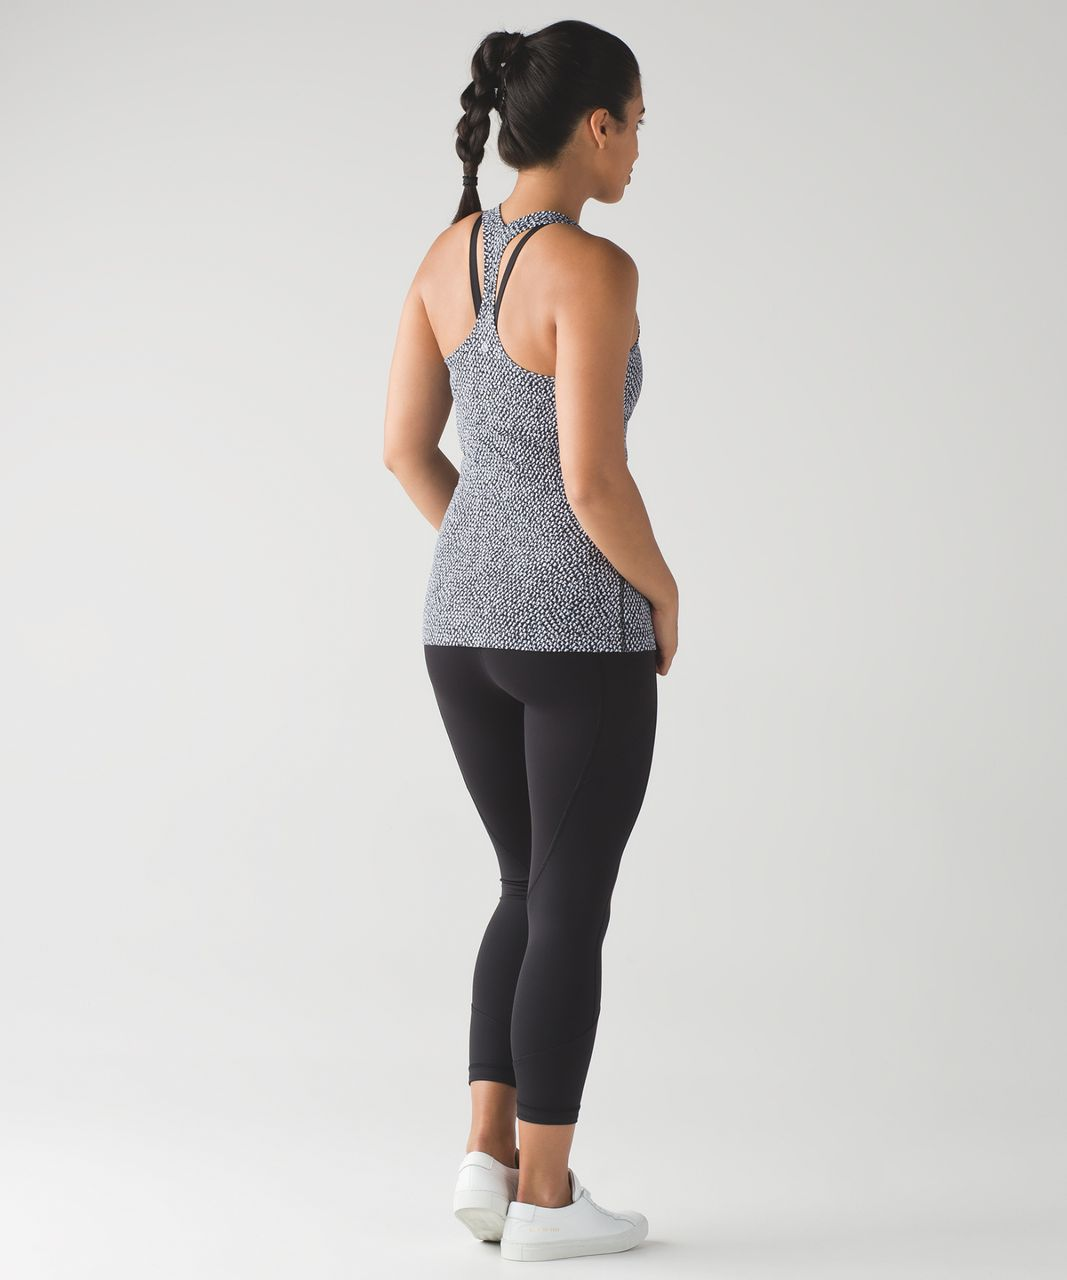 Lululemon Cool Racerback II - Scatter Star Arctic Grey Black